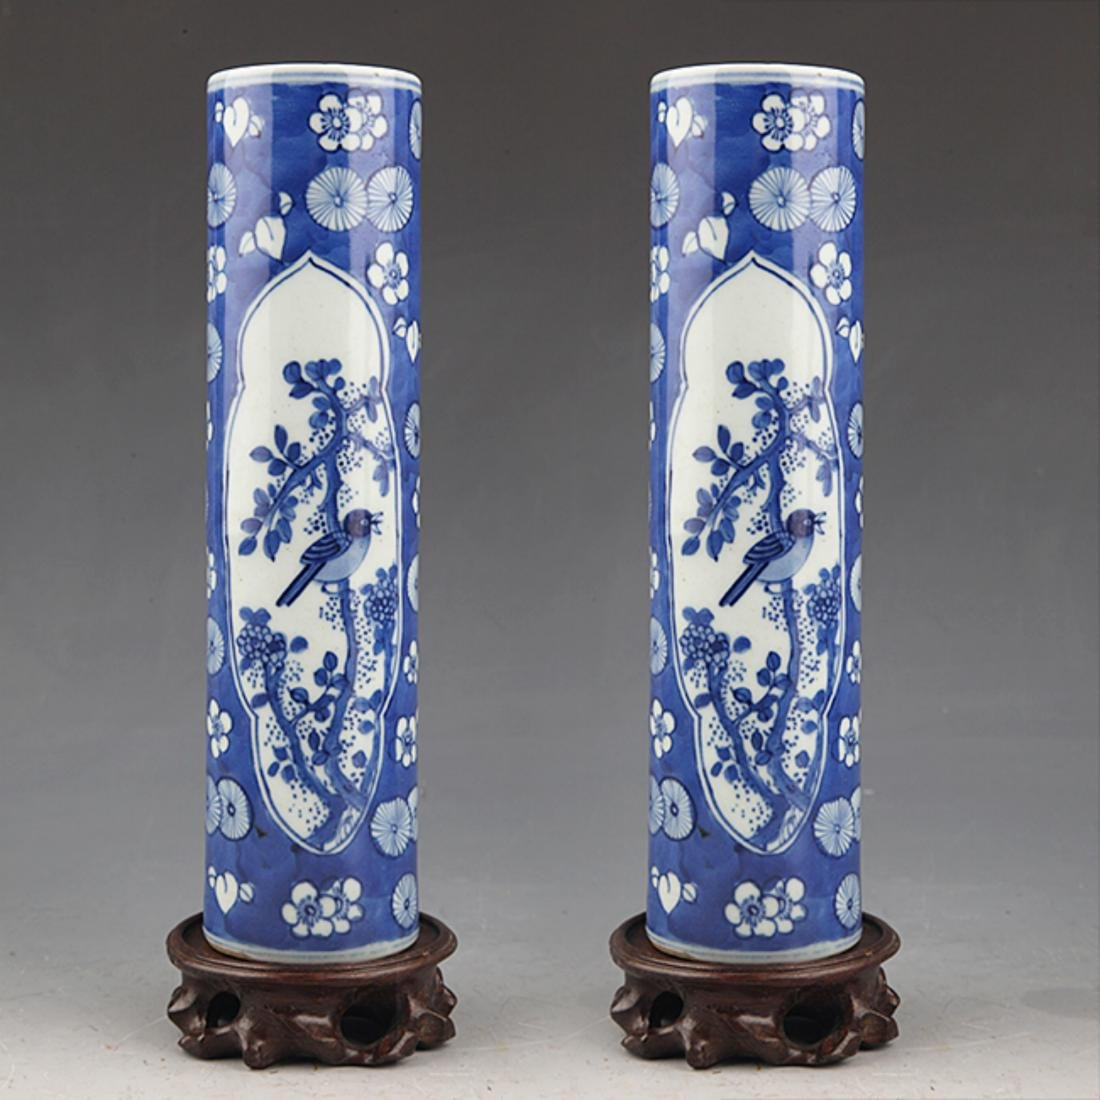 PAIR OF FINELY PAINTED BLUE AND WHITE FLOWER JAR